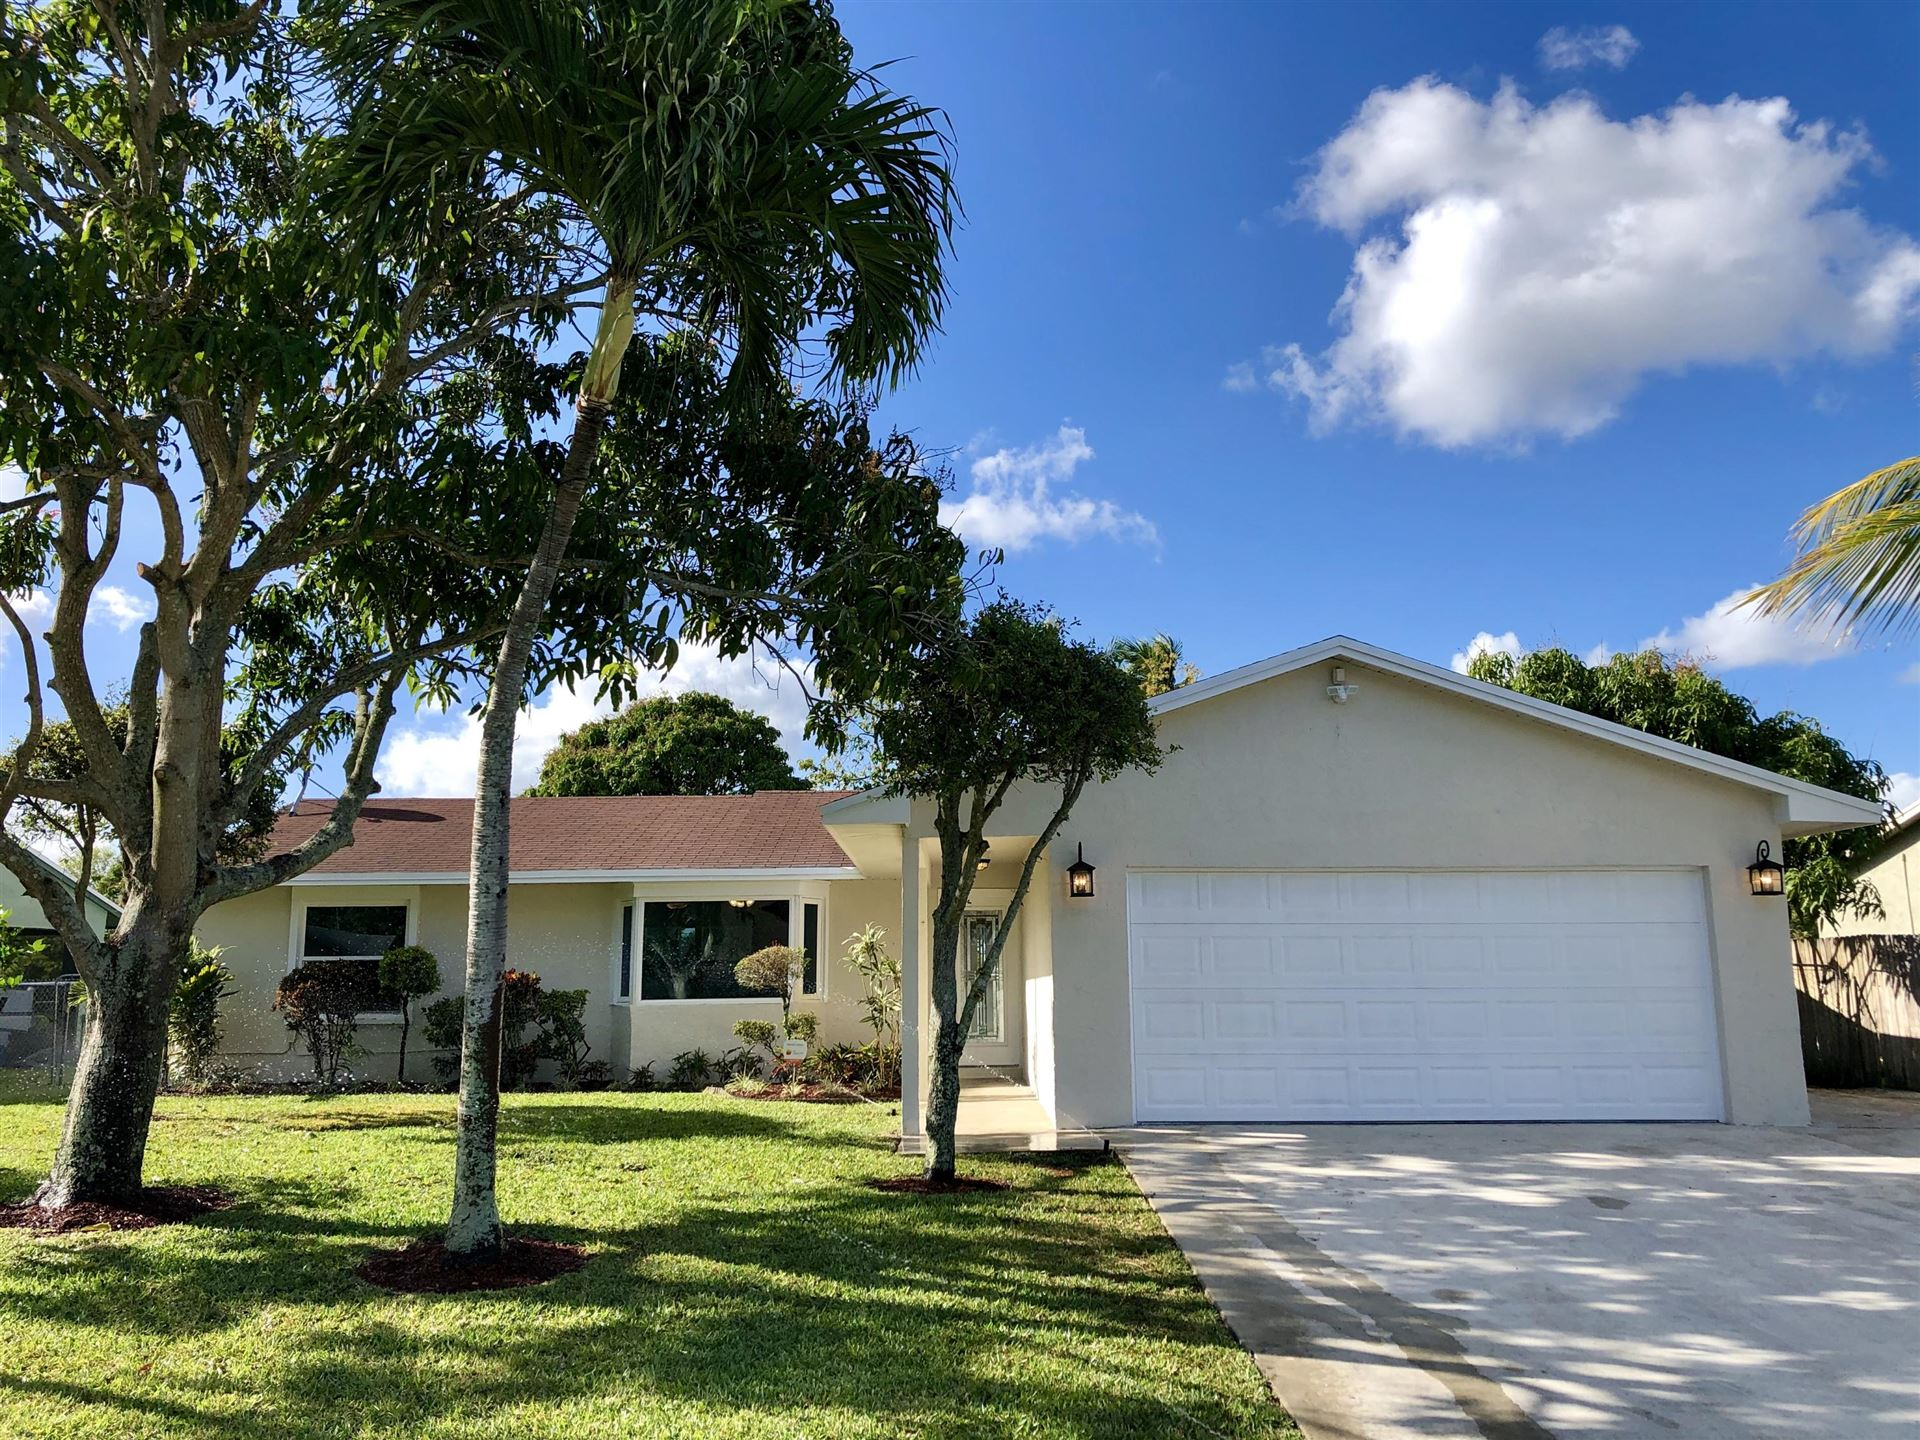 140 Bilbao Street, Royal Palm Beach, FL 33411 - #: RX-10611273